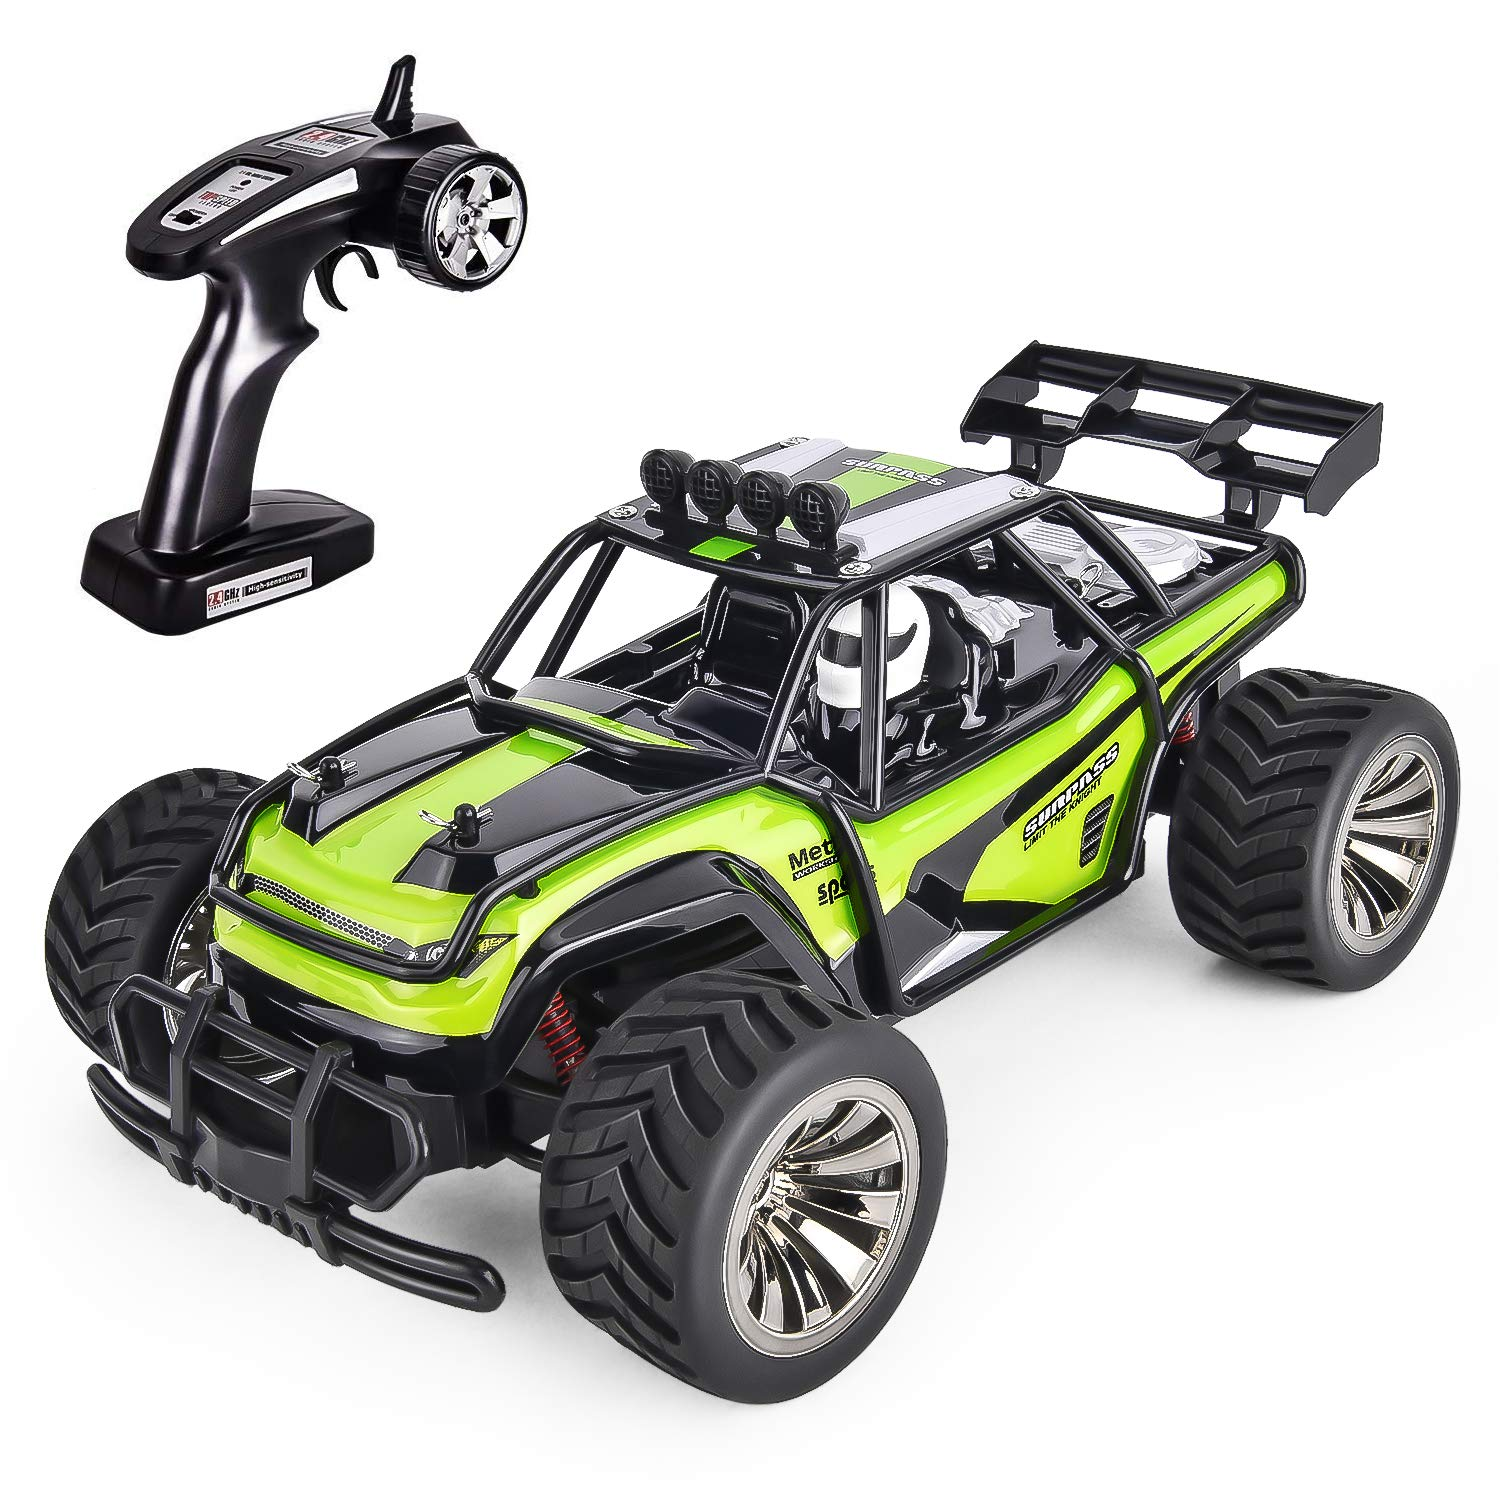 Remote Control Cars >> Gotechod Rc Cars For Kids Remote Control Car Toys Remote Control Truck Rc Vehicle Crawler Off Road Radio Controlled Car Toys For Age 6 7 8 9 10 11 16